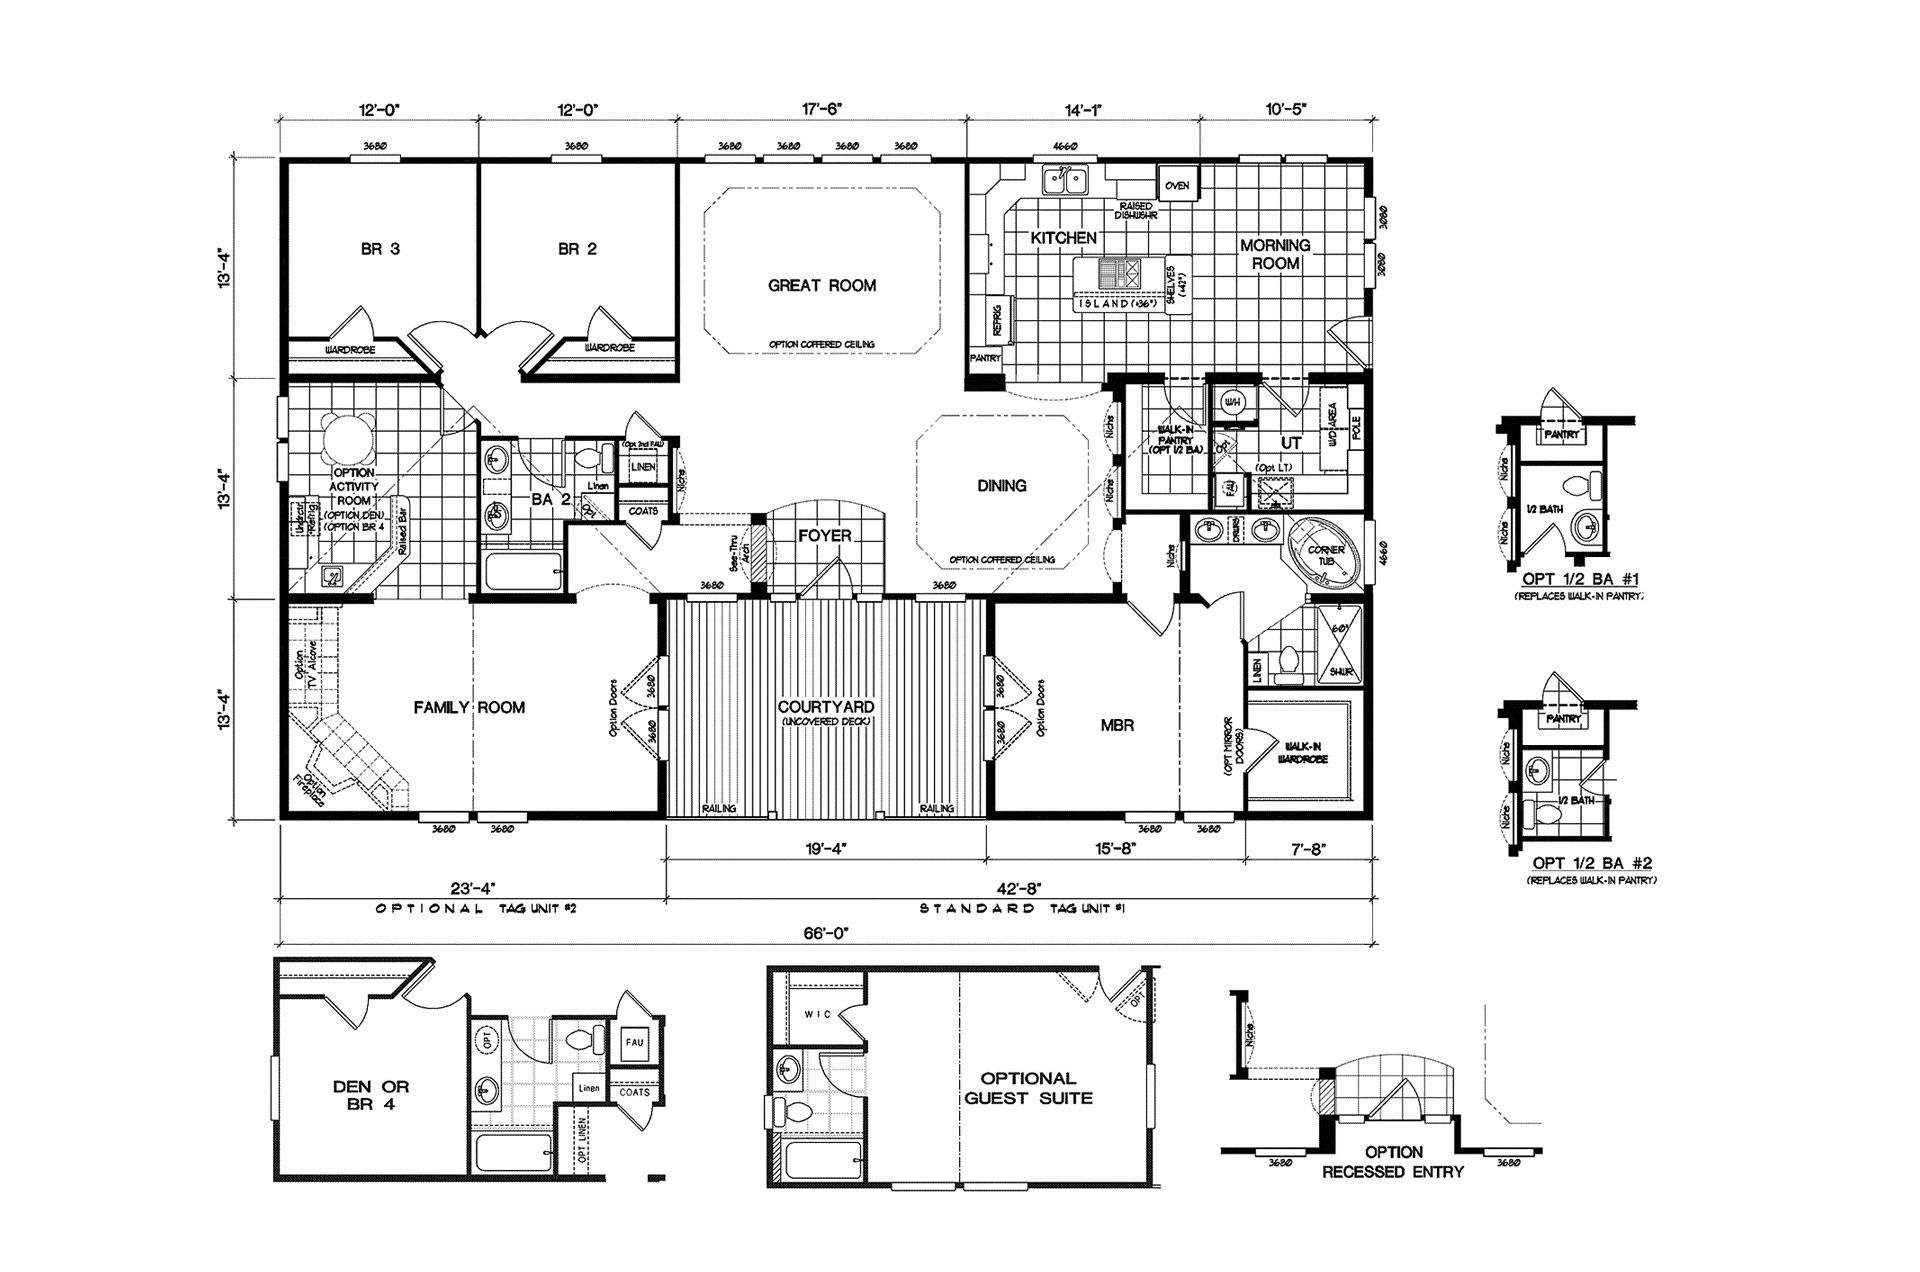 Quadruple wide mobile home floor plans 5 bedroom 3 for 5 bedroom mobile home floor plans